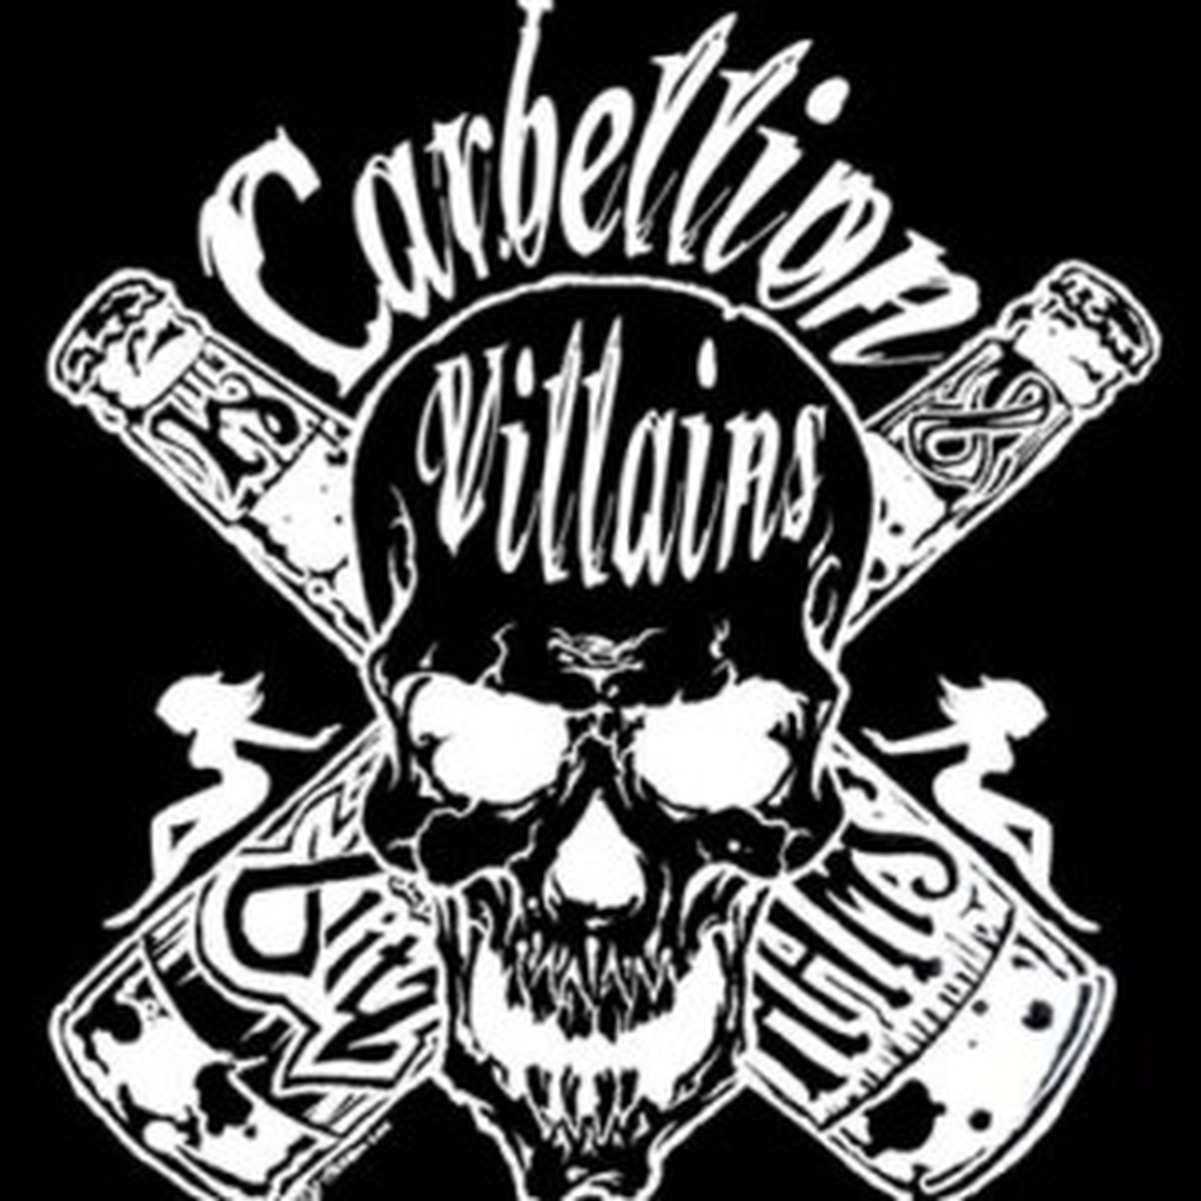 Carbellion wiki, Carbellion review, Carbellion history, Carbellion news